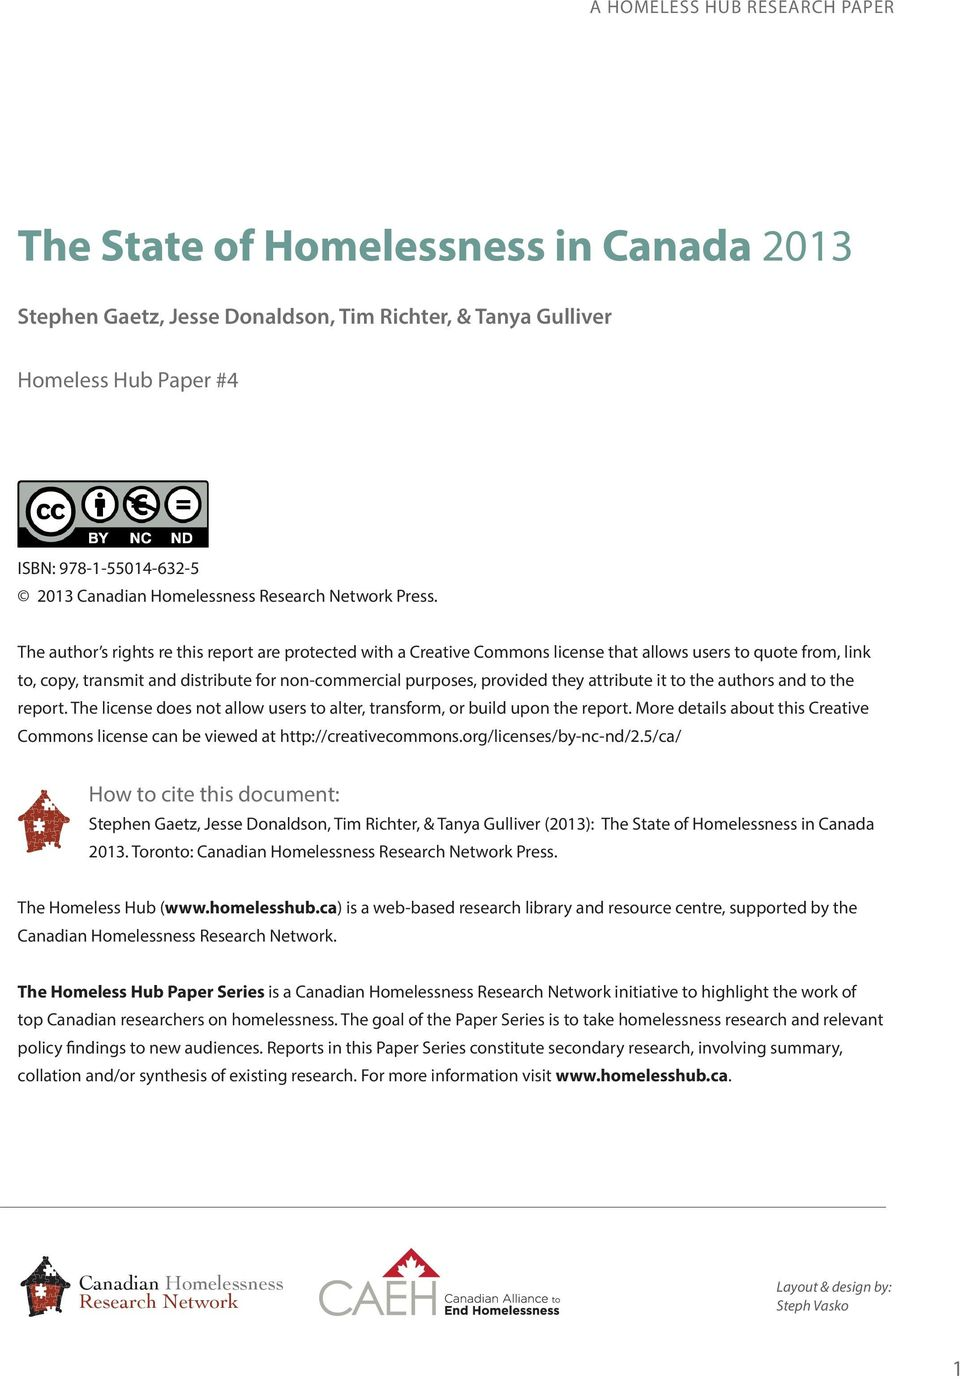 003 Page 2 Research Paper On Singular Homelessness Article In The United States Sample Full